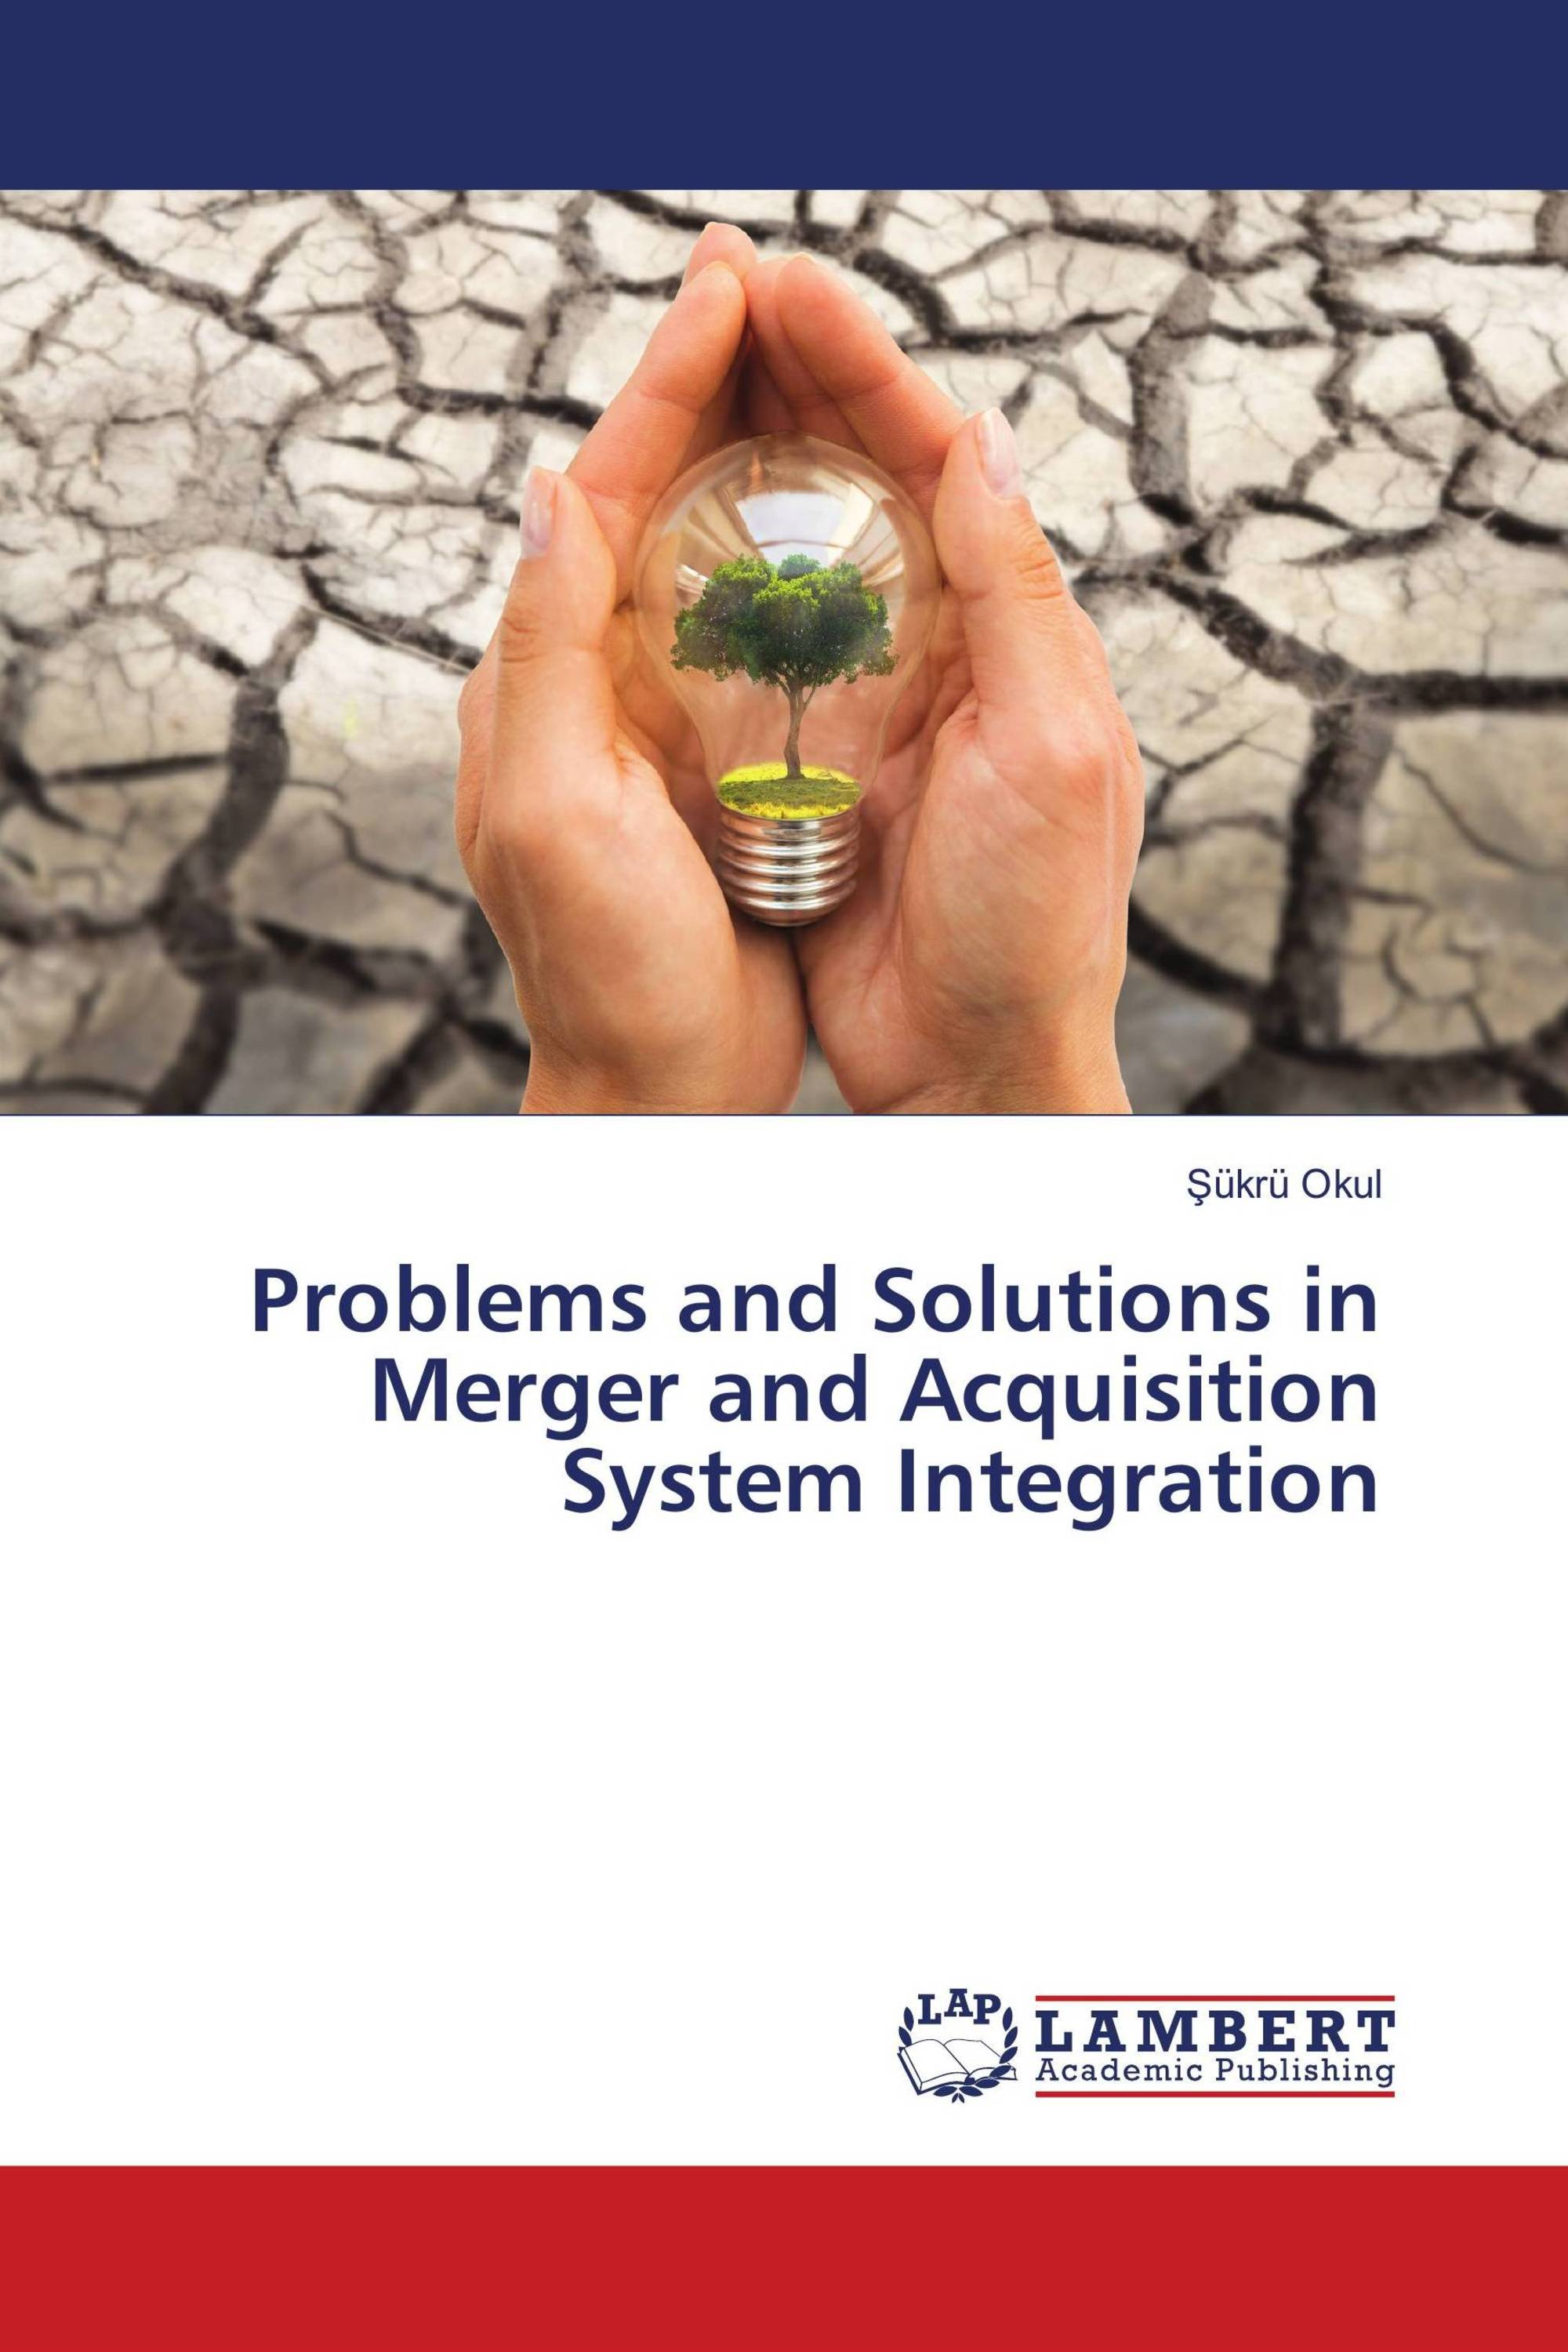 Problems and Solutions in Merger and Acquisition System